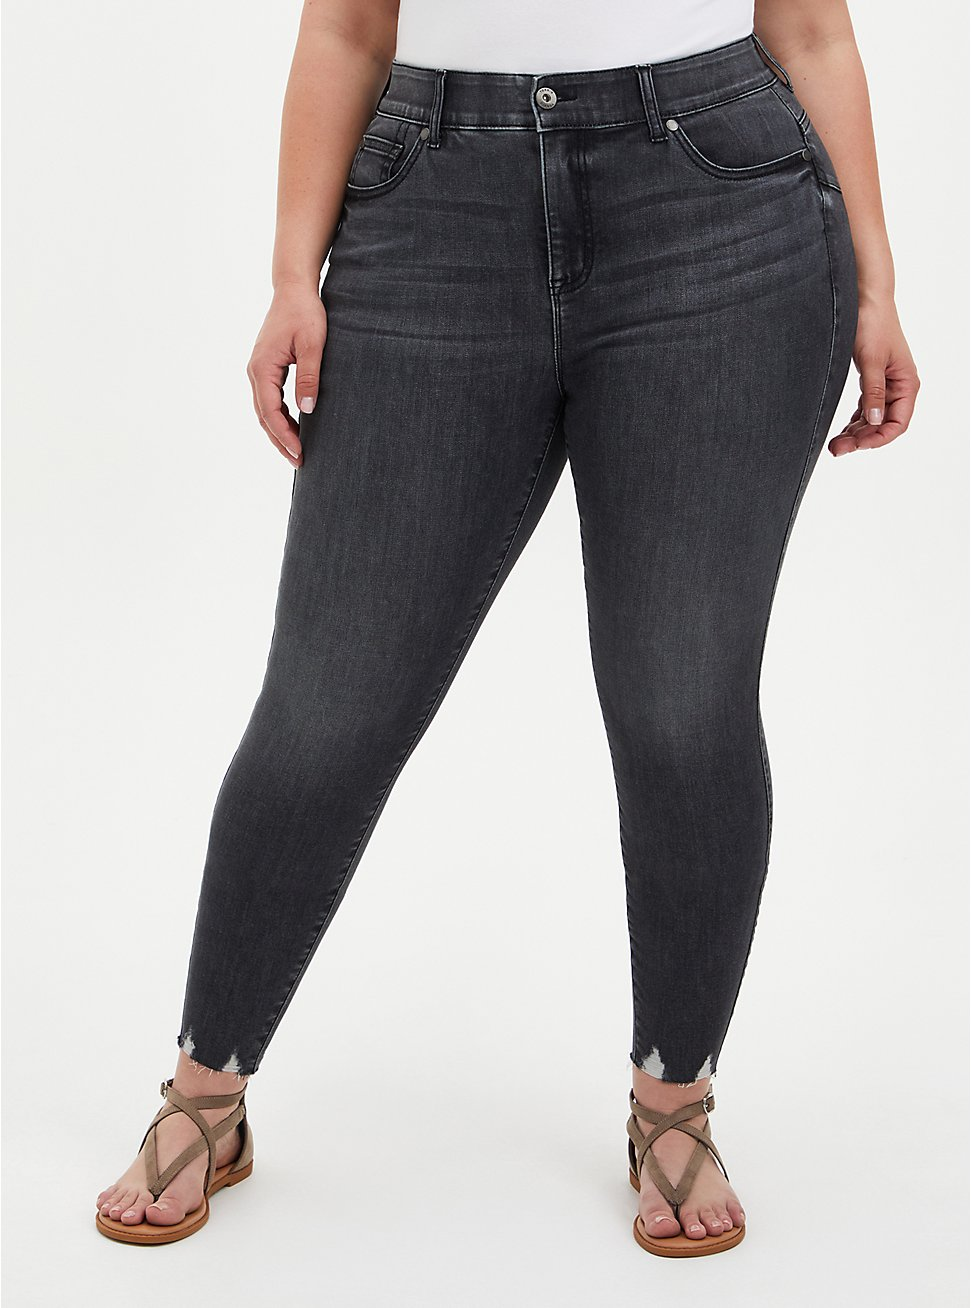 Bombshell Skinny Jean - Super Soft Washed Black With Destructed Hem, RAVEN, hi-res